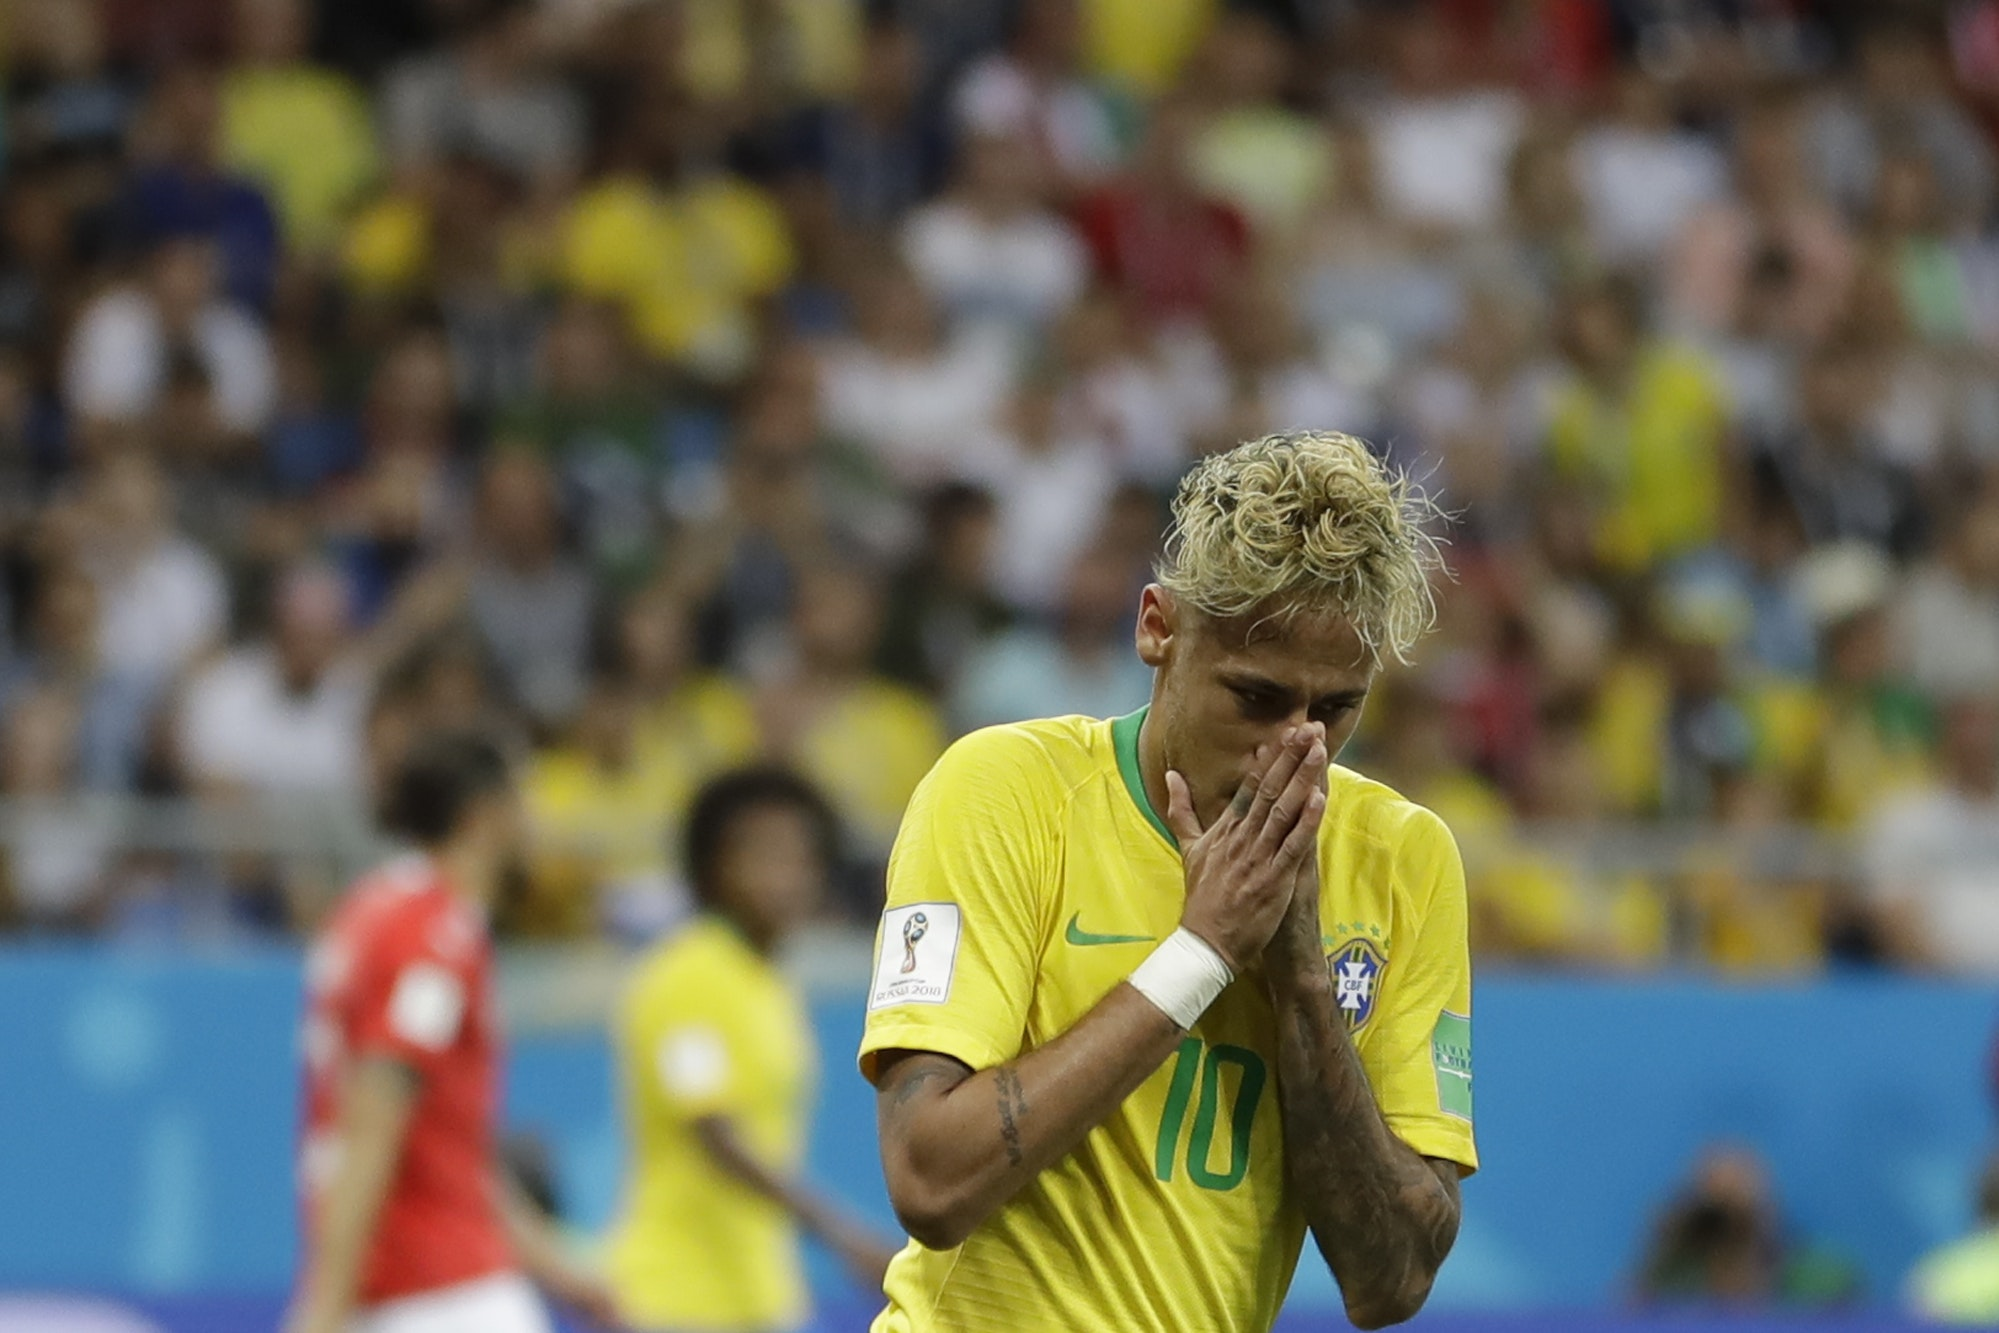 Neymar recovered from a fractured metatarsal to be fit for the World Cup